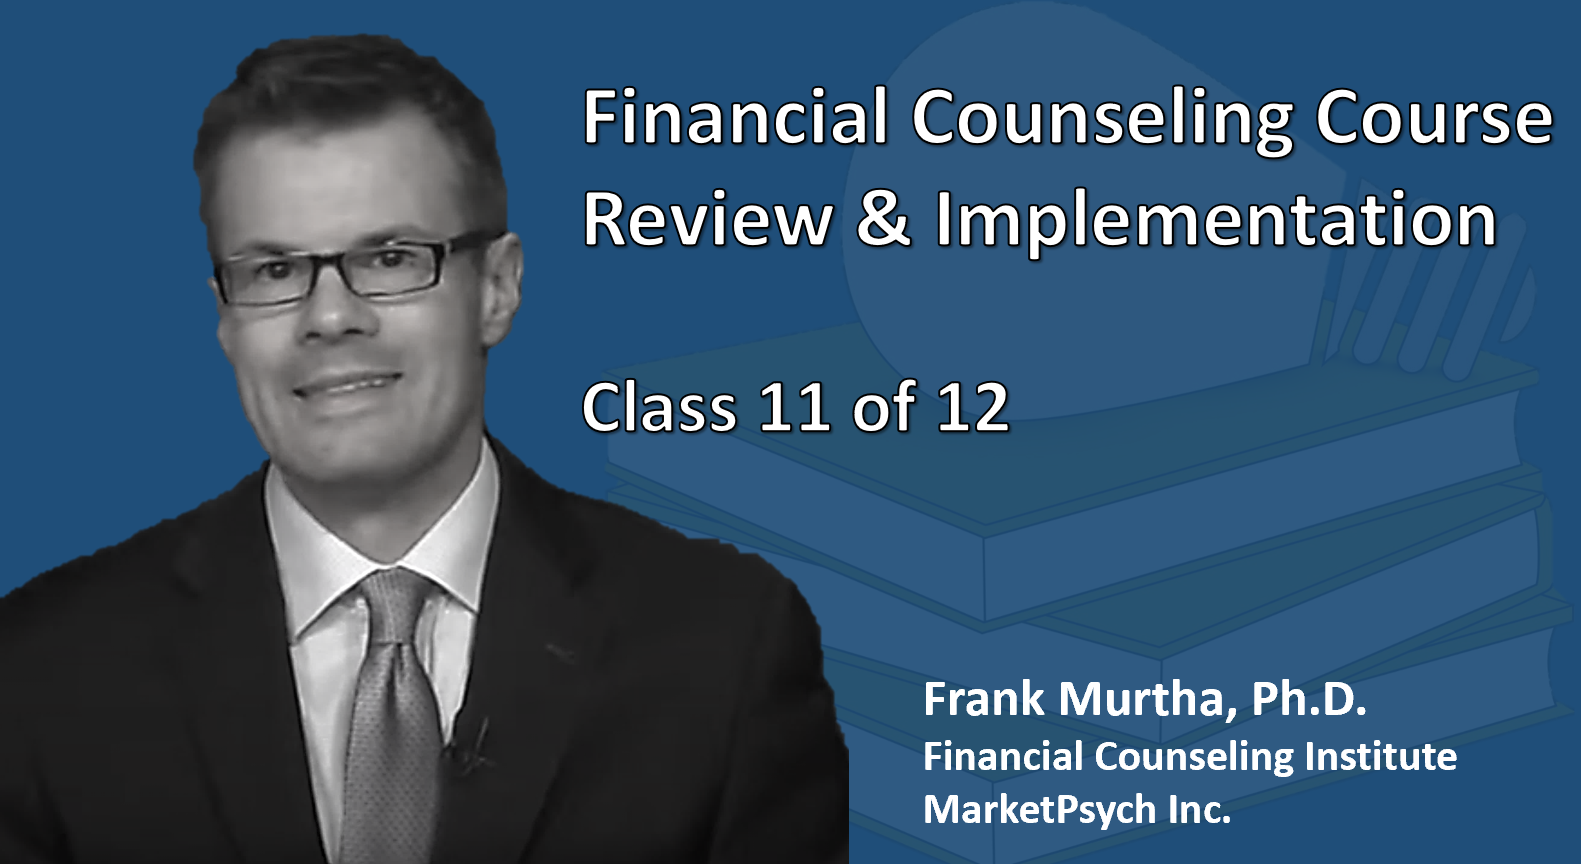 Financial Counseling Course Review & Implementation (1 Credit)